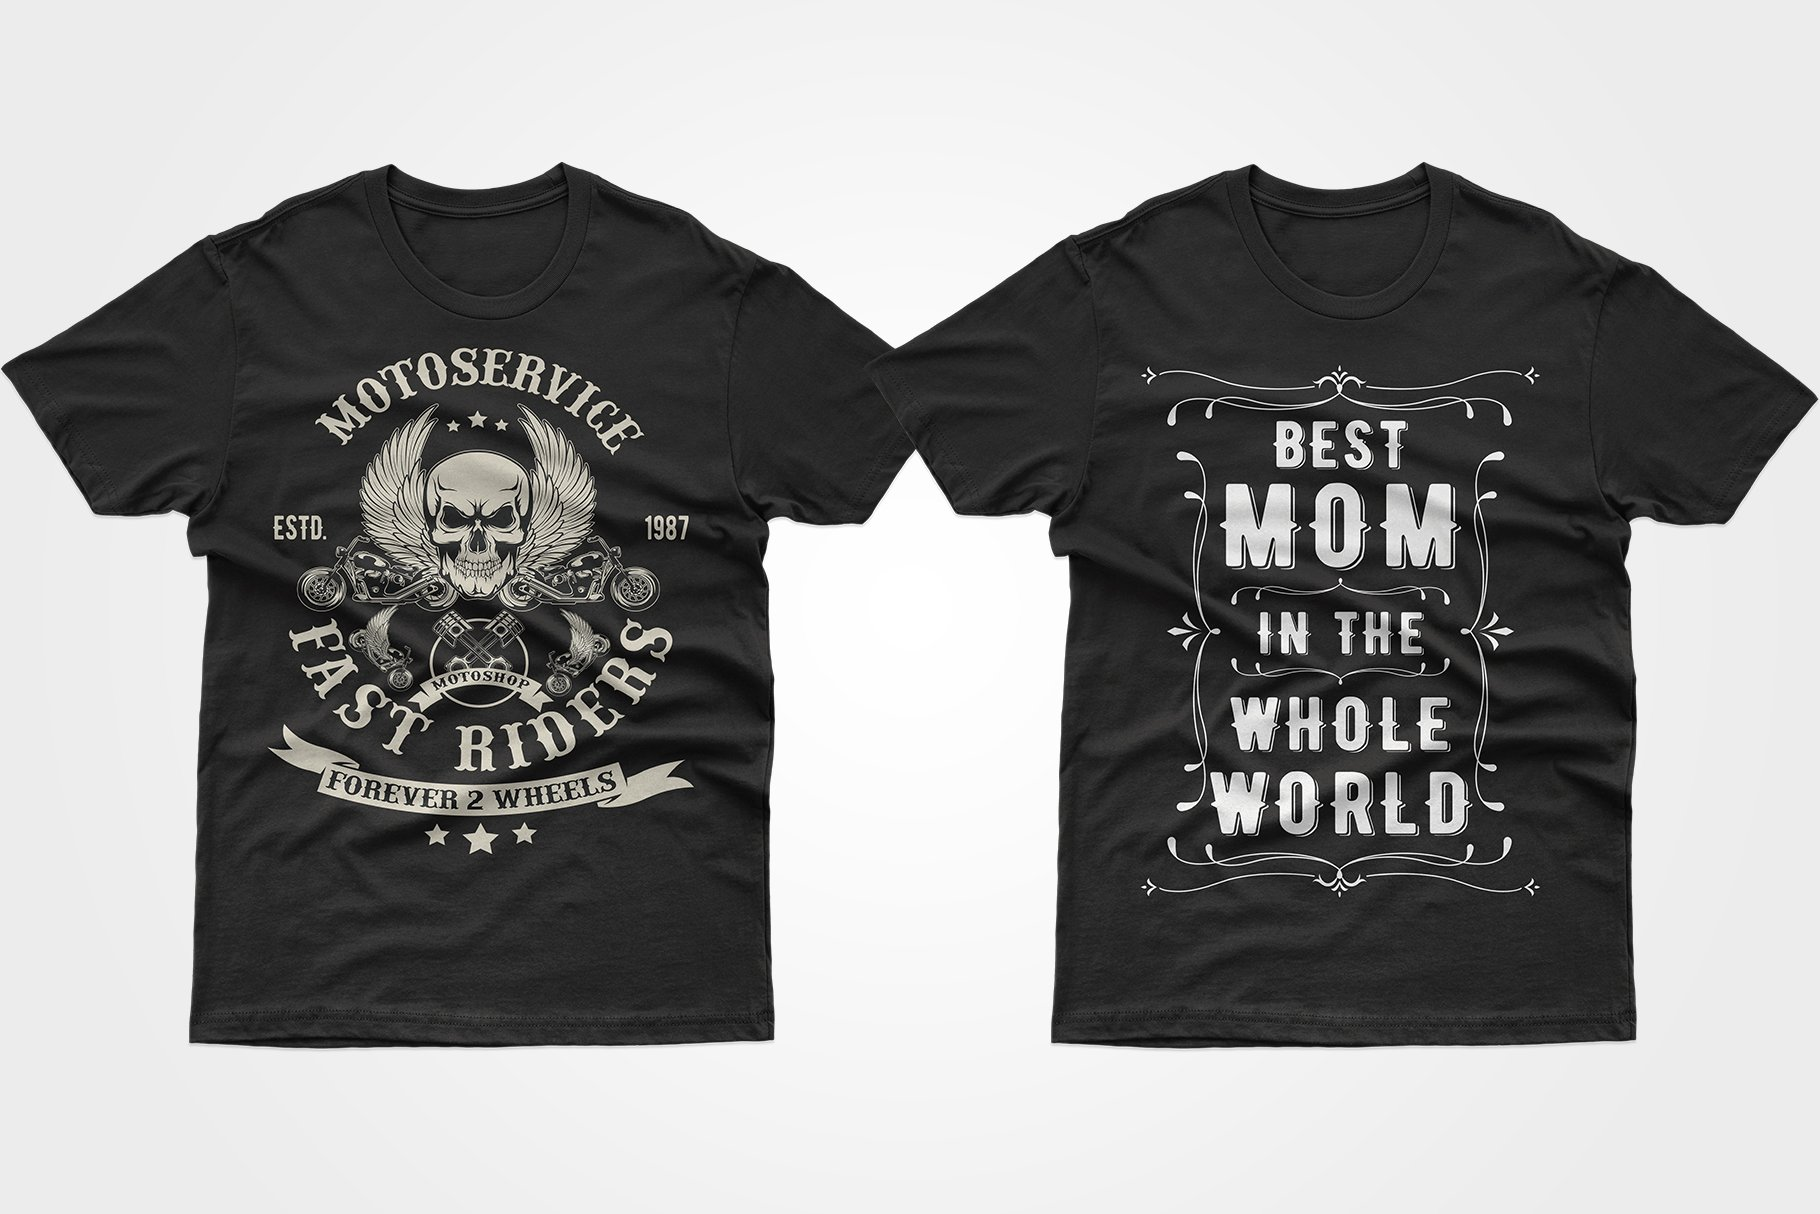 Two black T-shirts - one with a skull, the other with a phrase about mom.